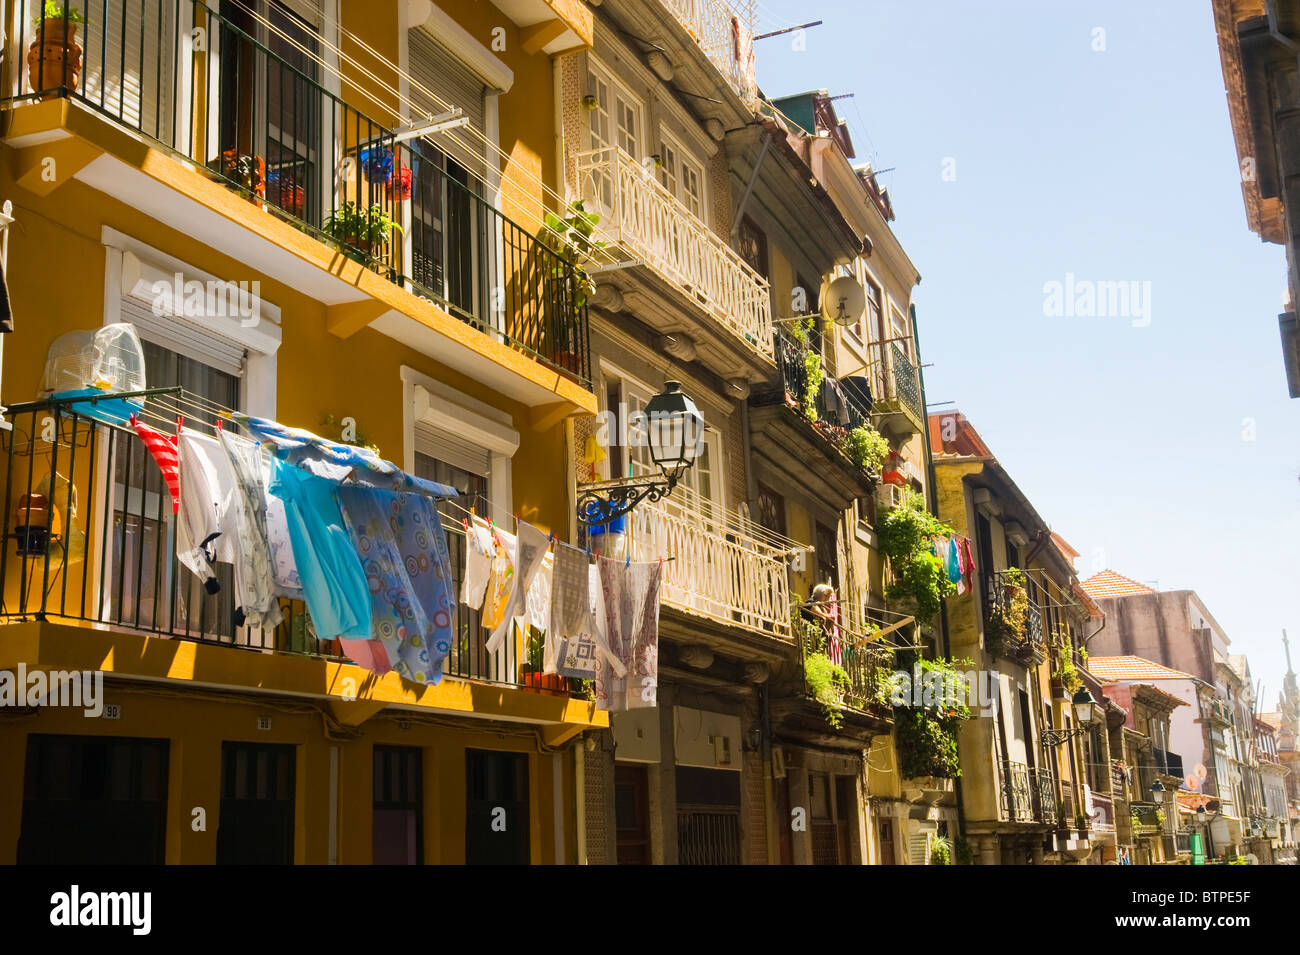 Clothes drying, Traditional Buildings, Porto, Portugal - Stock Image